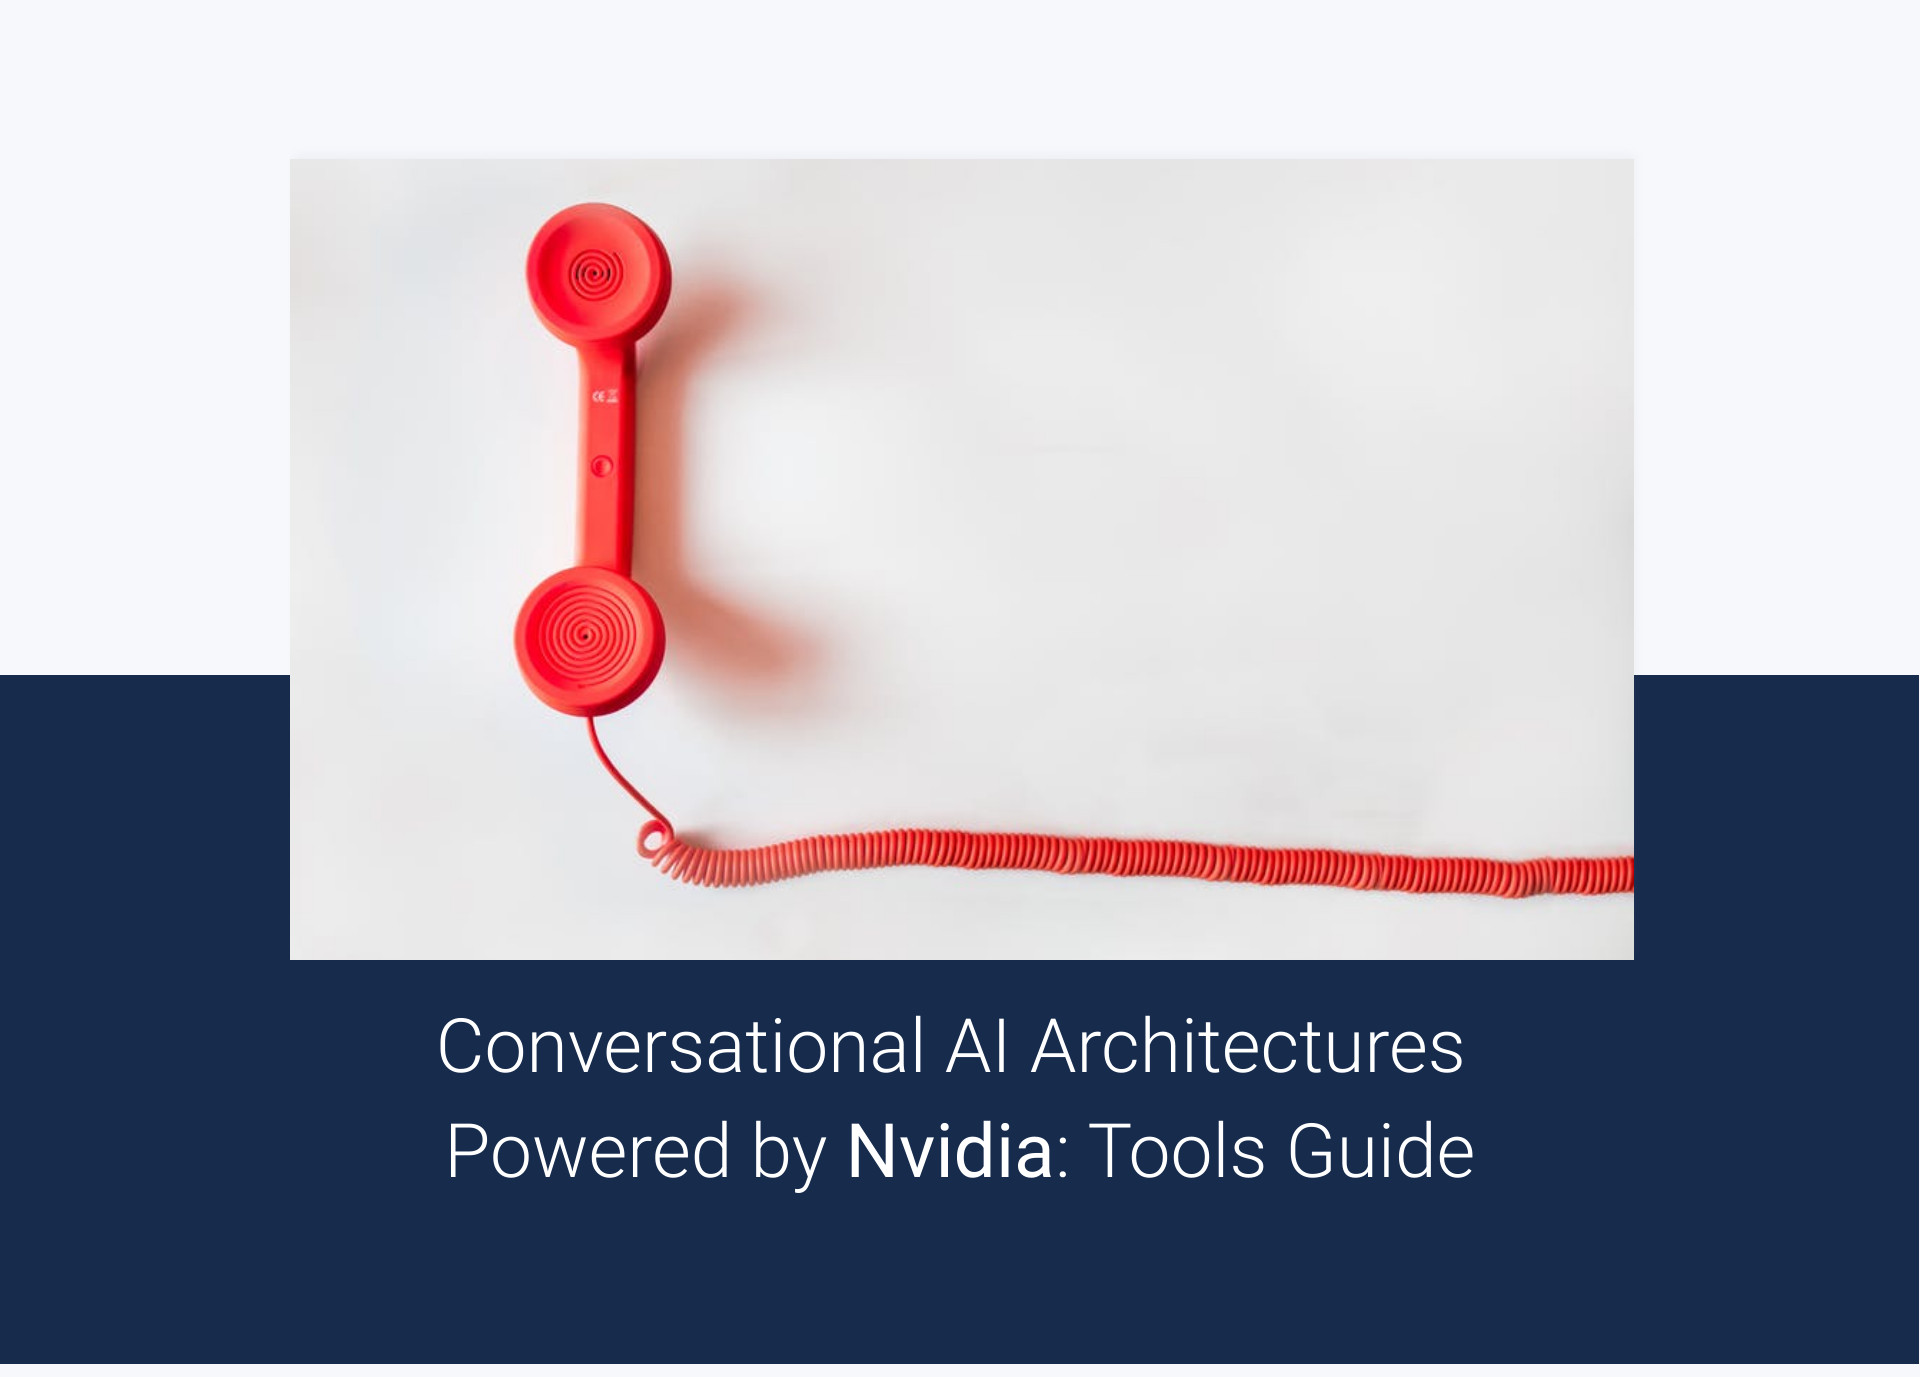 Conversational AI Architectures Powered by Nvidia: Tools Guide